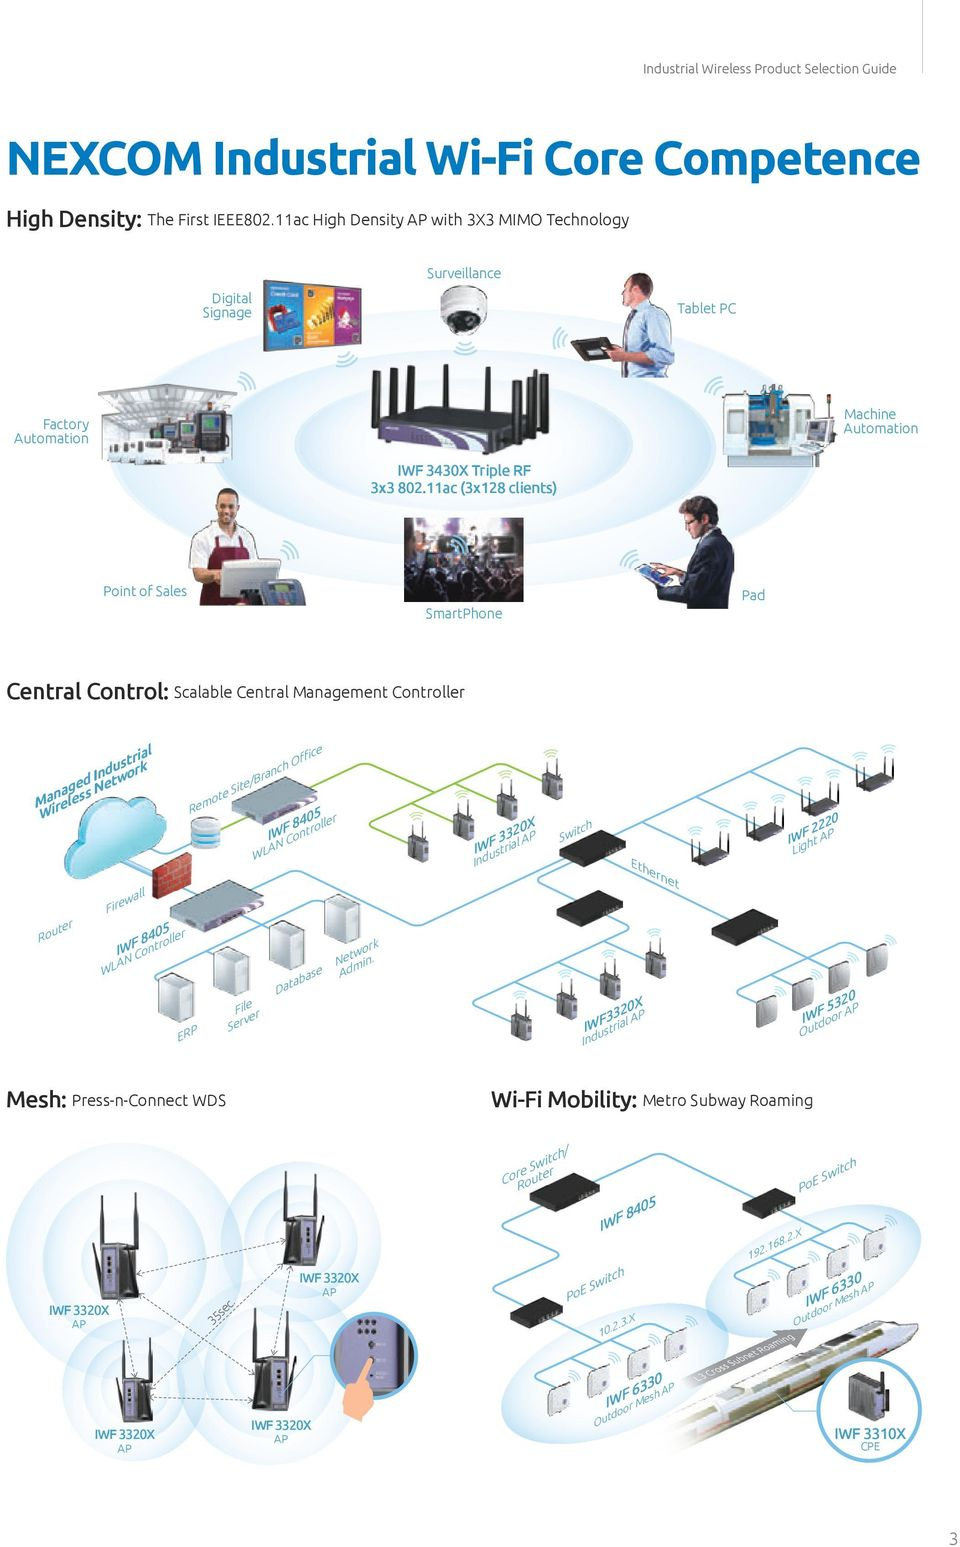 11ac (3x128 clients) Point of Sales SmartPhone Pad Central Control: Scalable Central Management Controller Managed Industrial Wireless Network Remote Site/Branch Office IWF 8405 WLAN Controller IWF